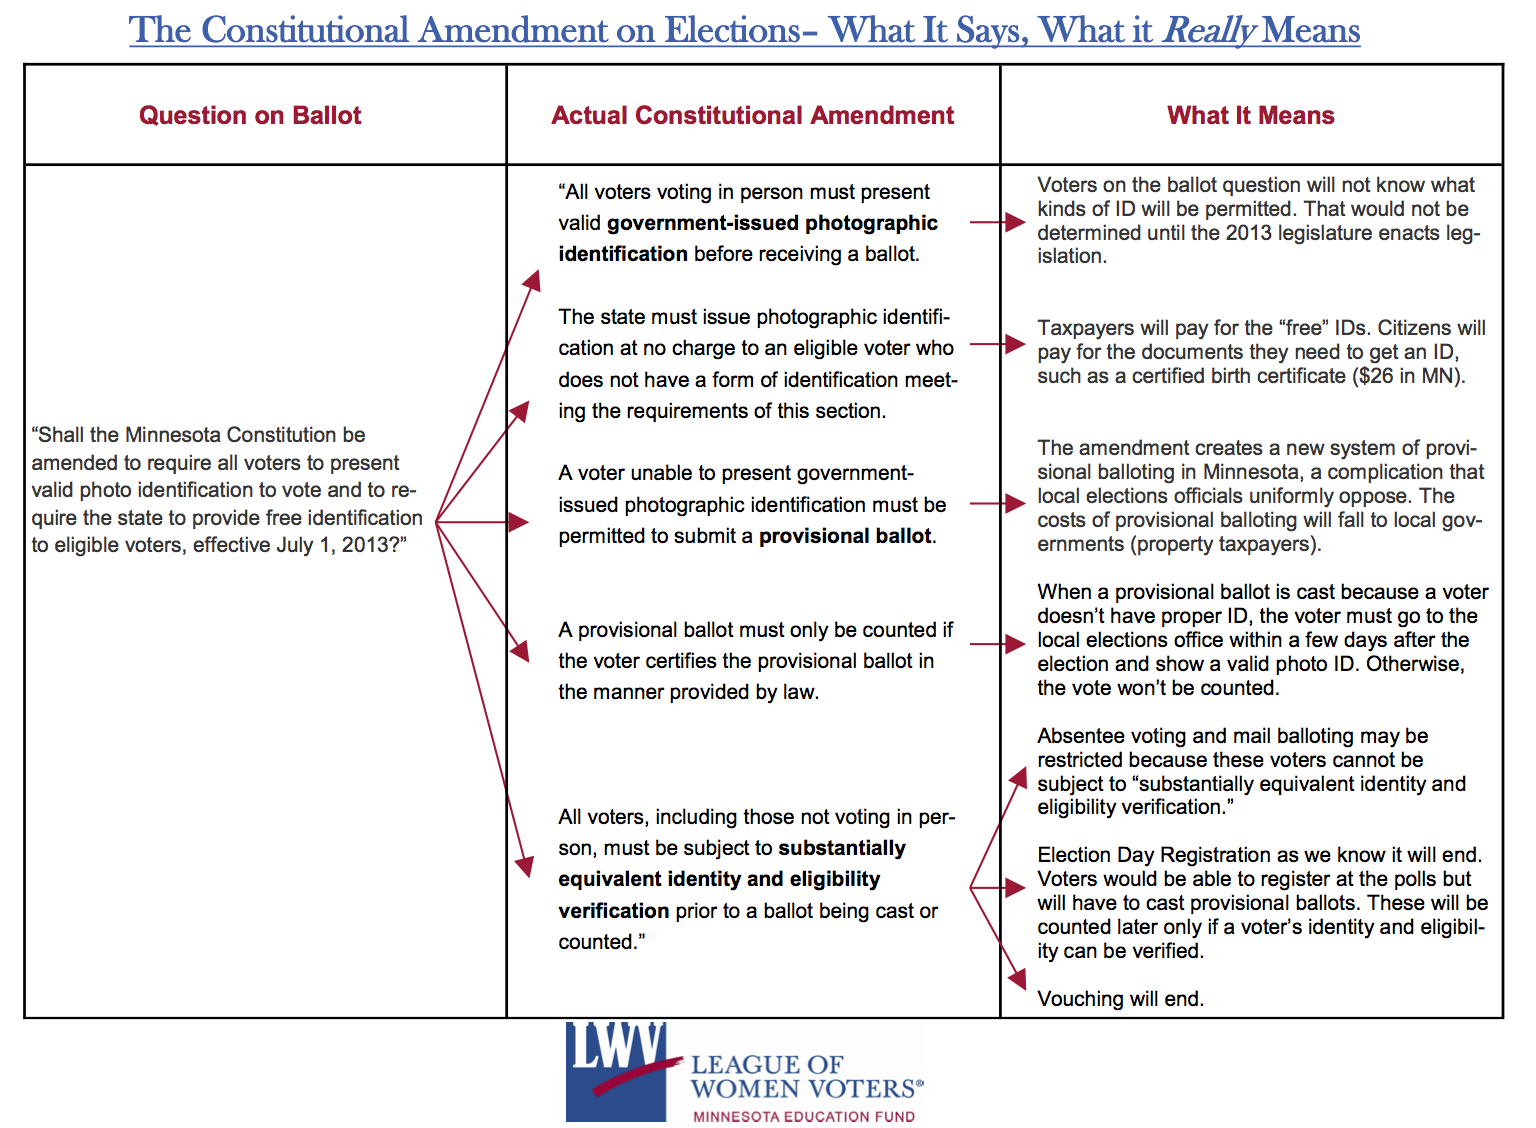 What the amendment really means